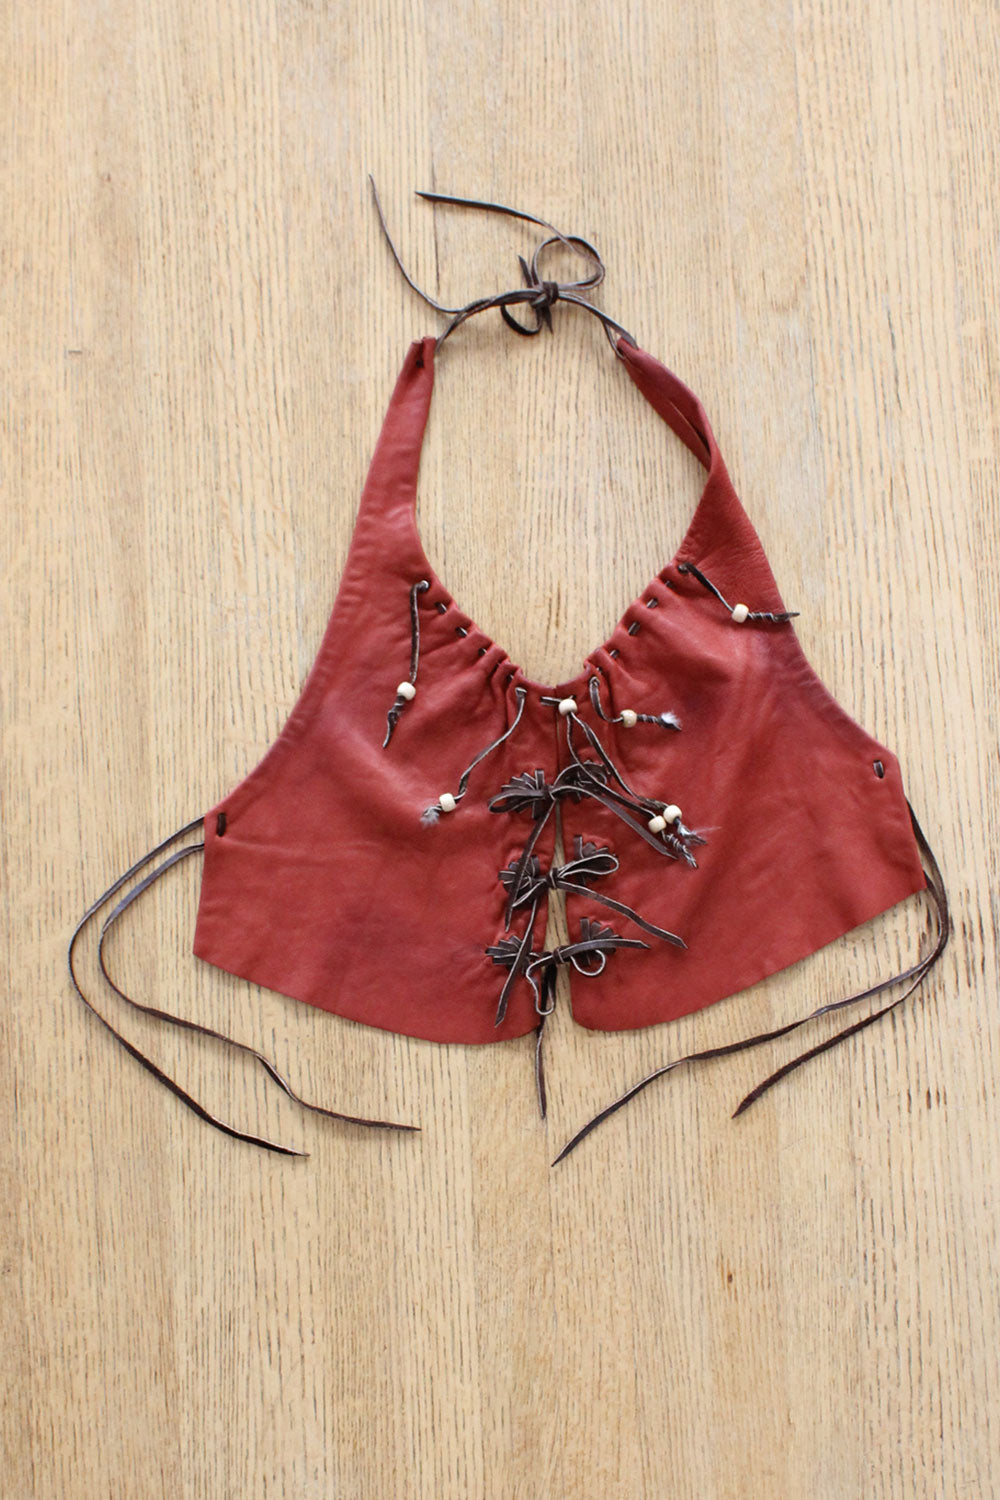 Burnt Orange Leather Halter Top XS-M